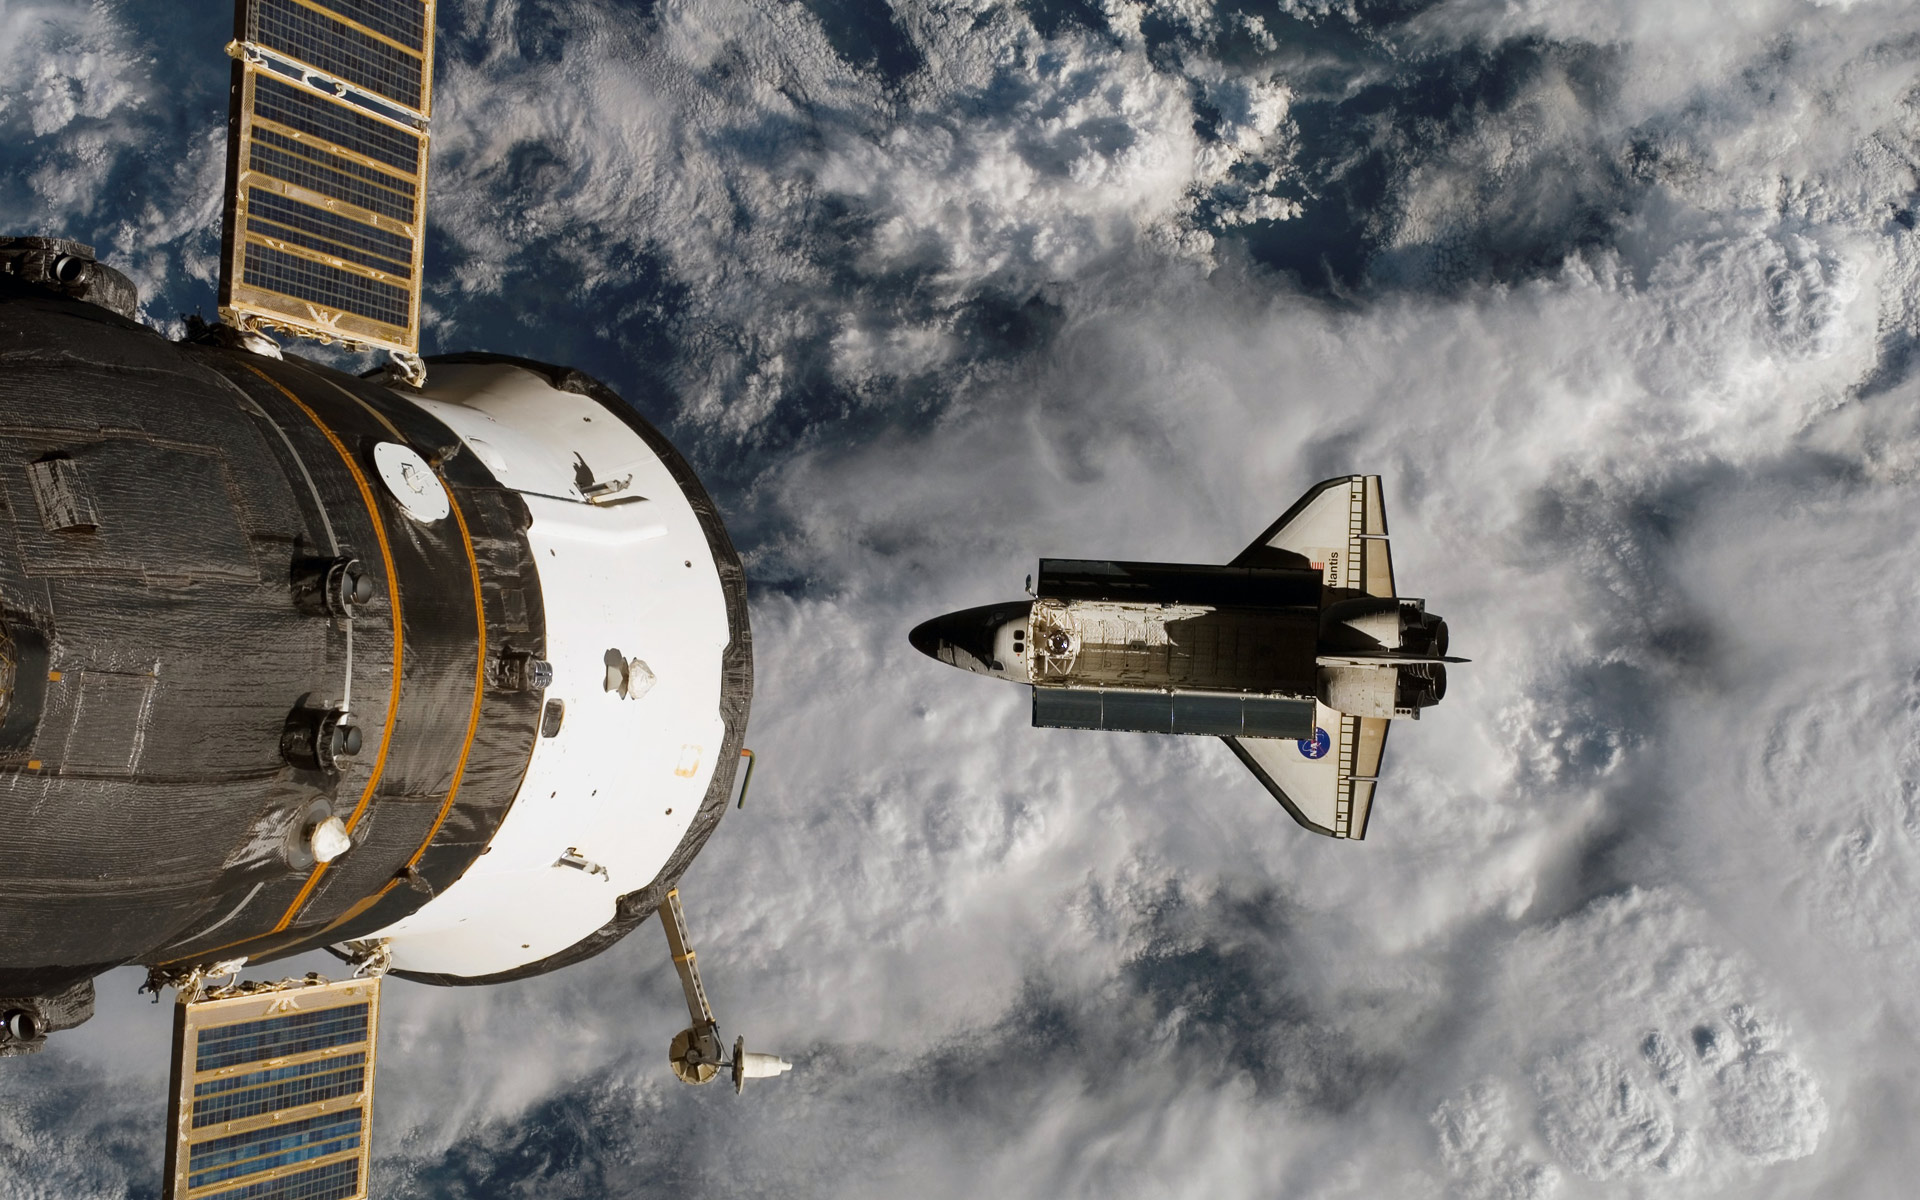 Space Shuttle Atlantis - Pictures, posters, news and ...